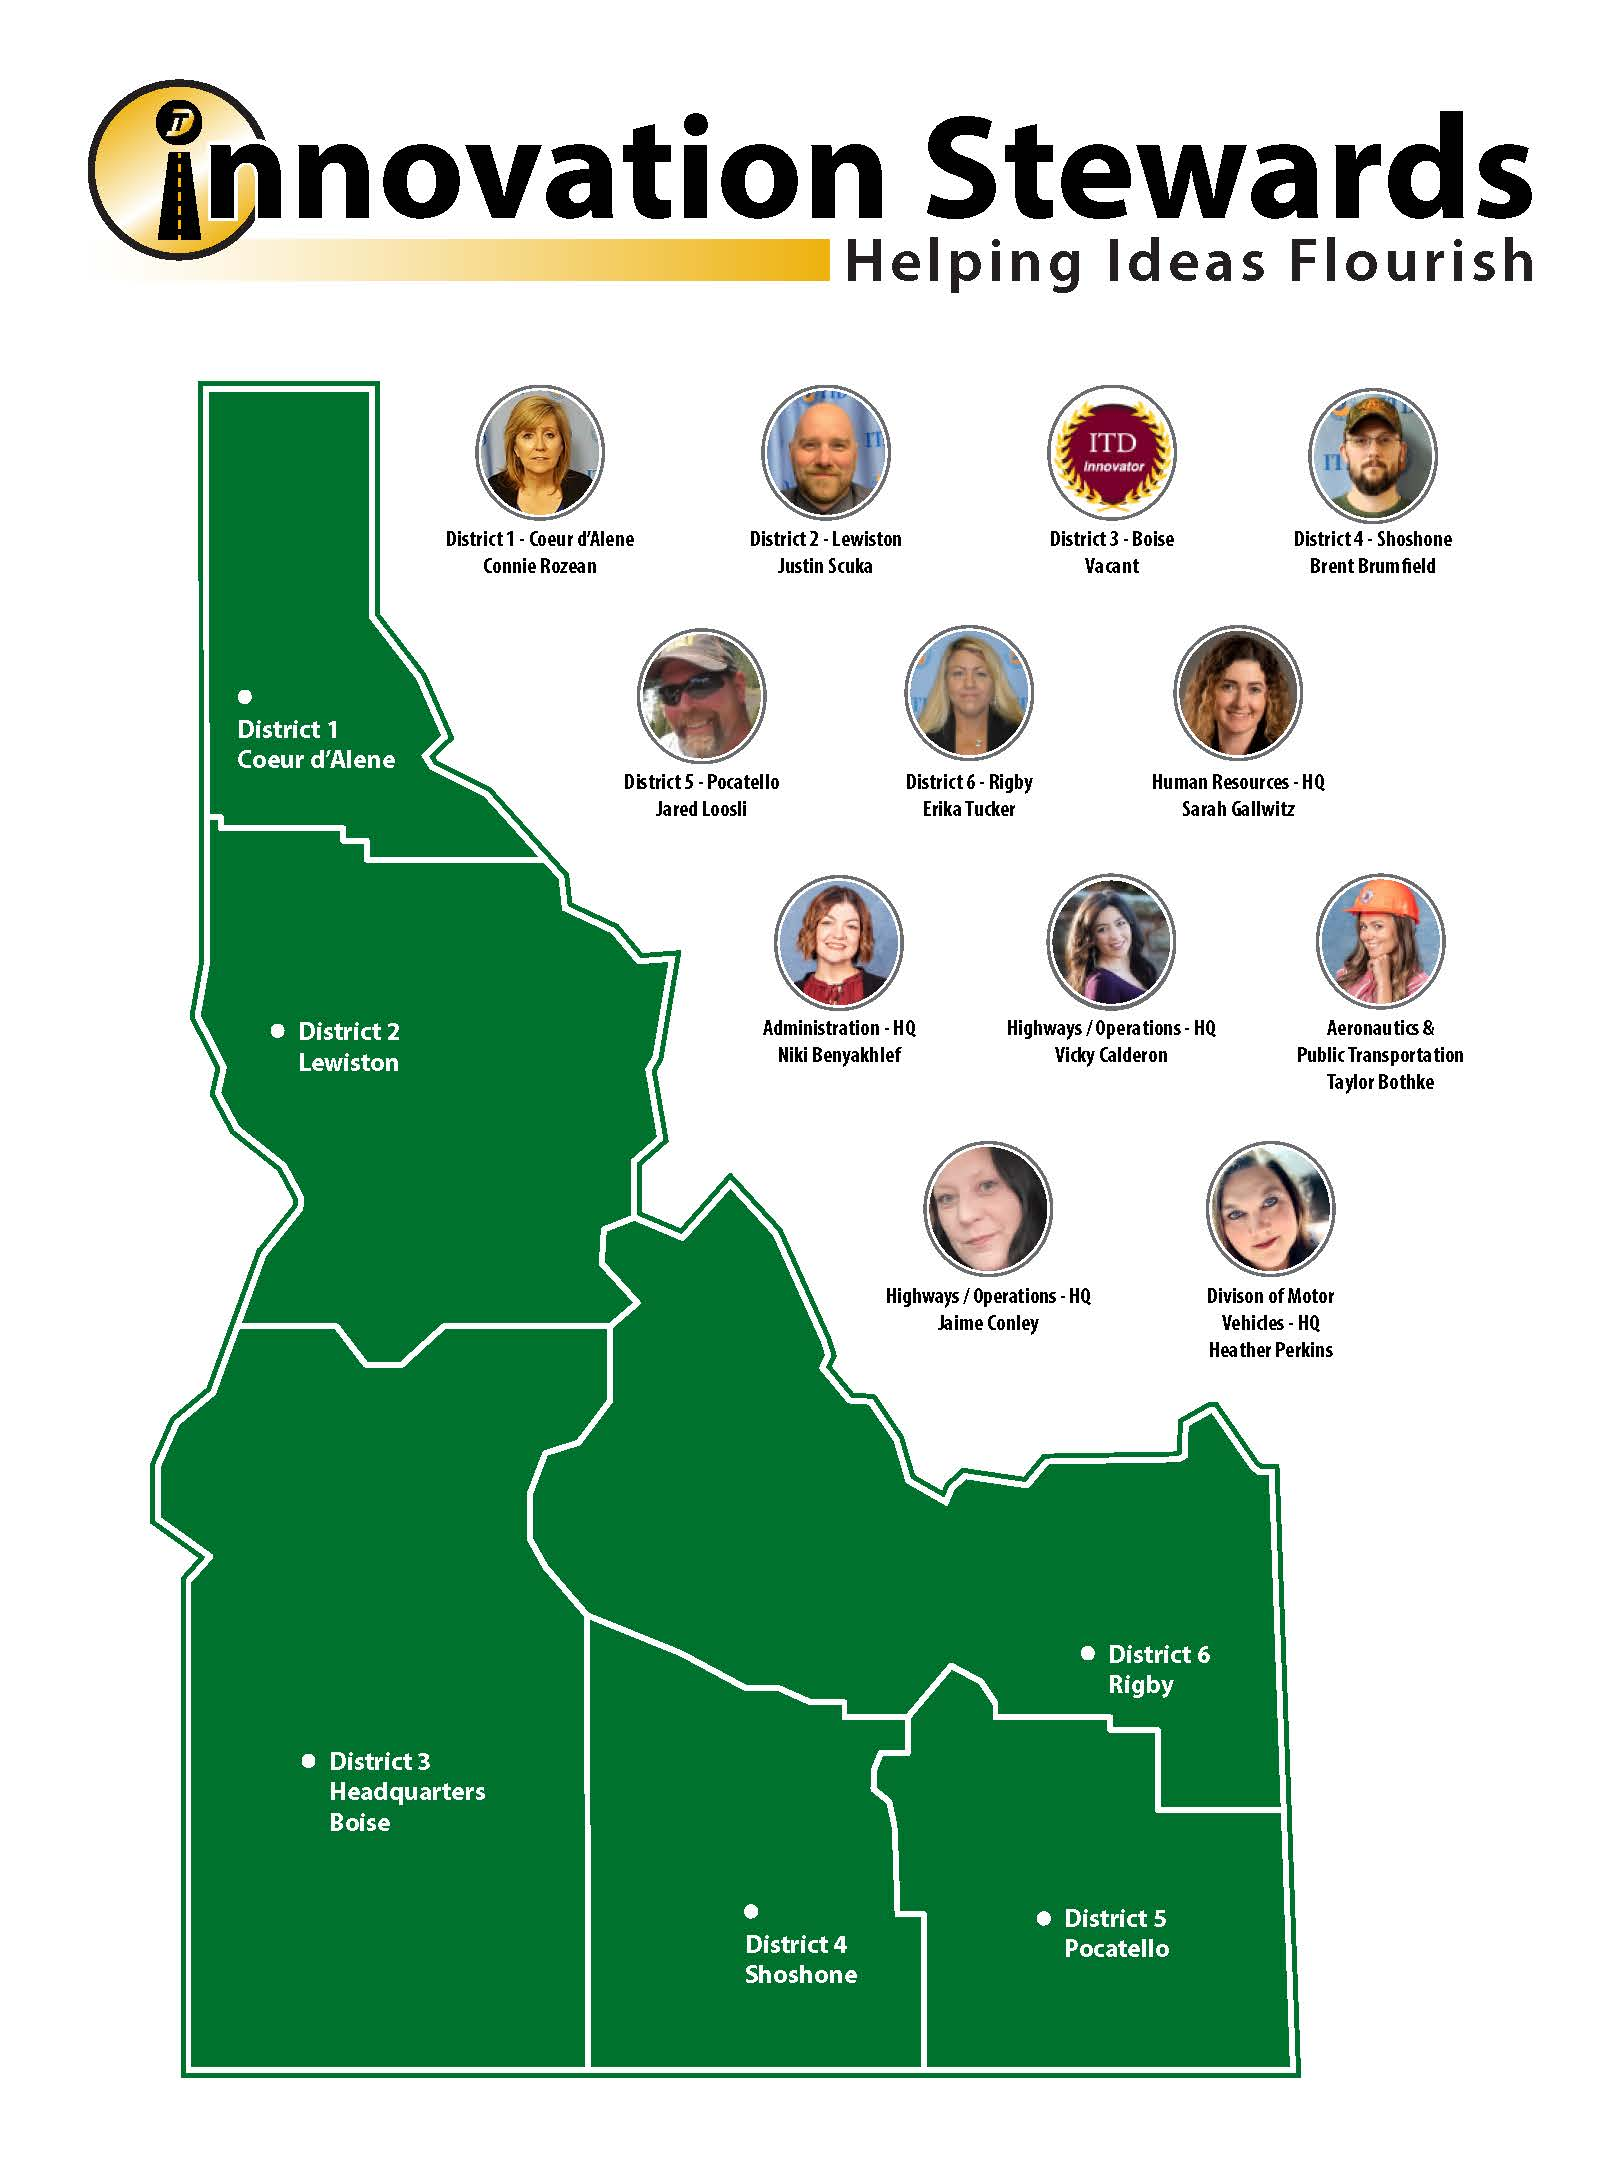 ITD's Innovation Stewards & Idaho location - Help to make ideas flourish